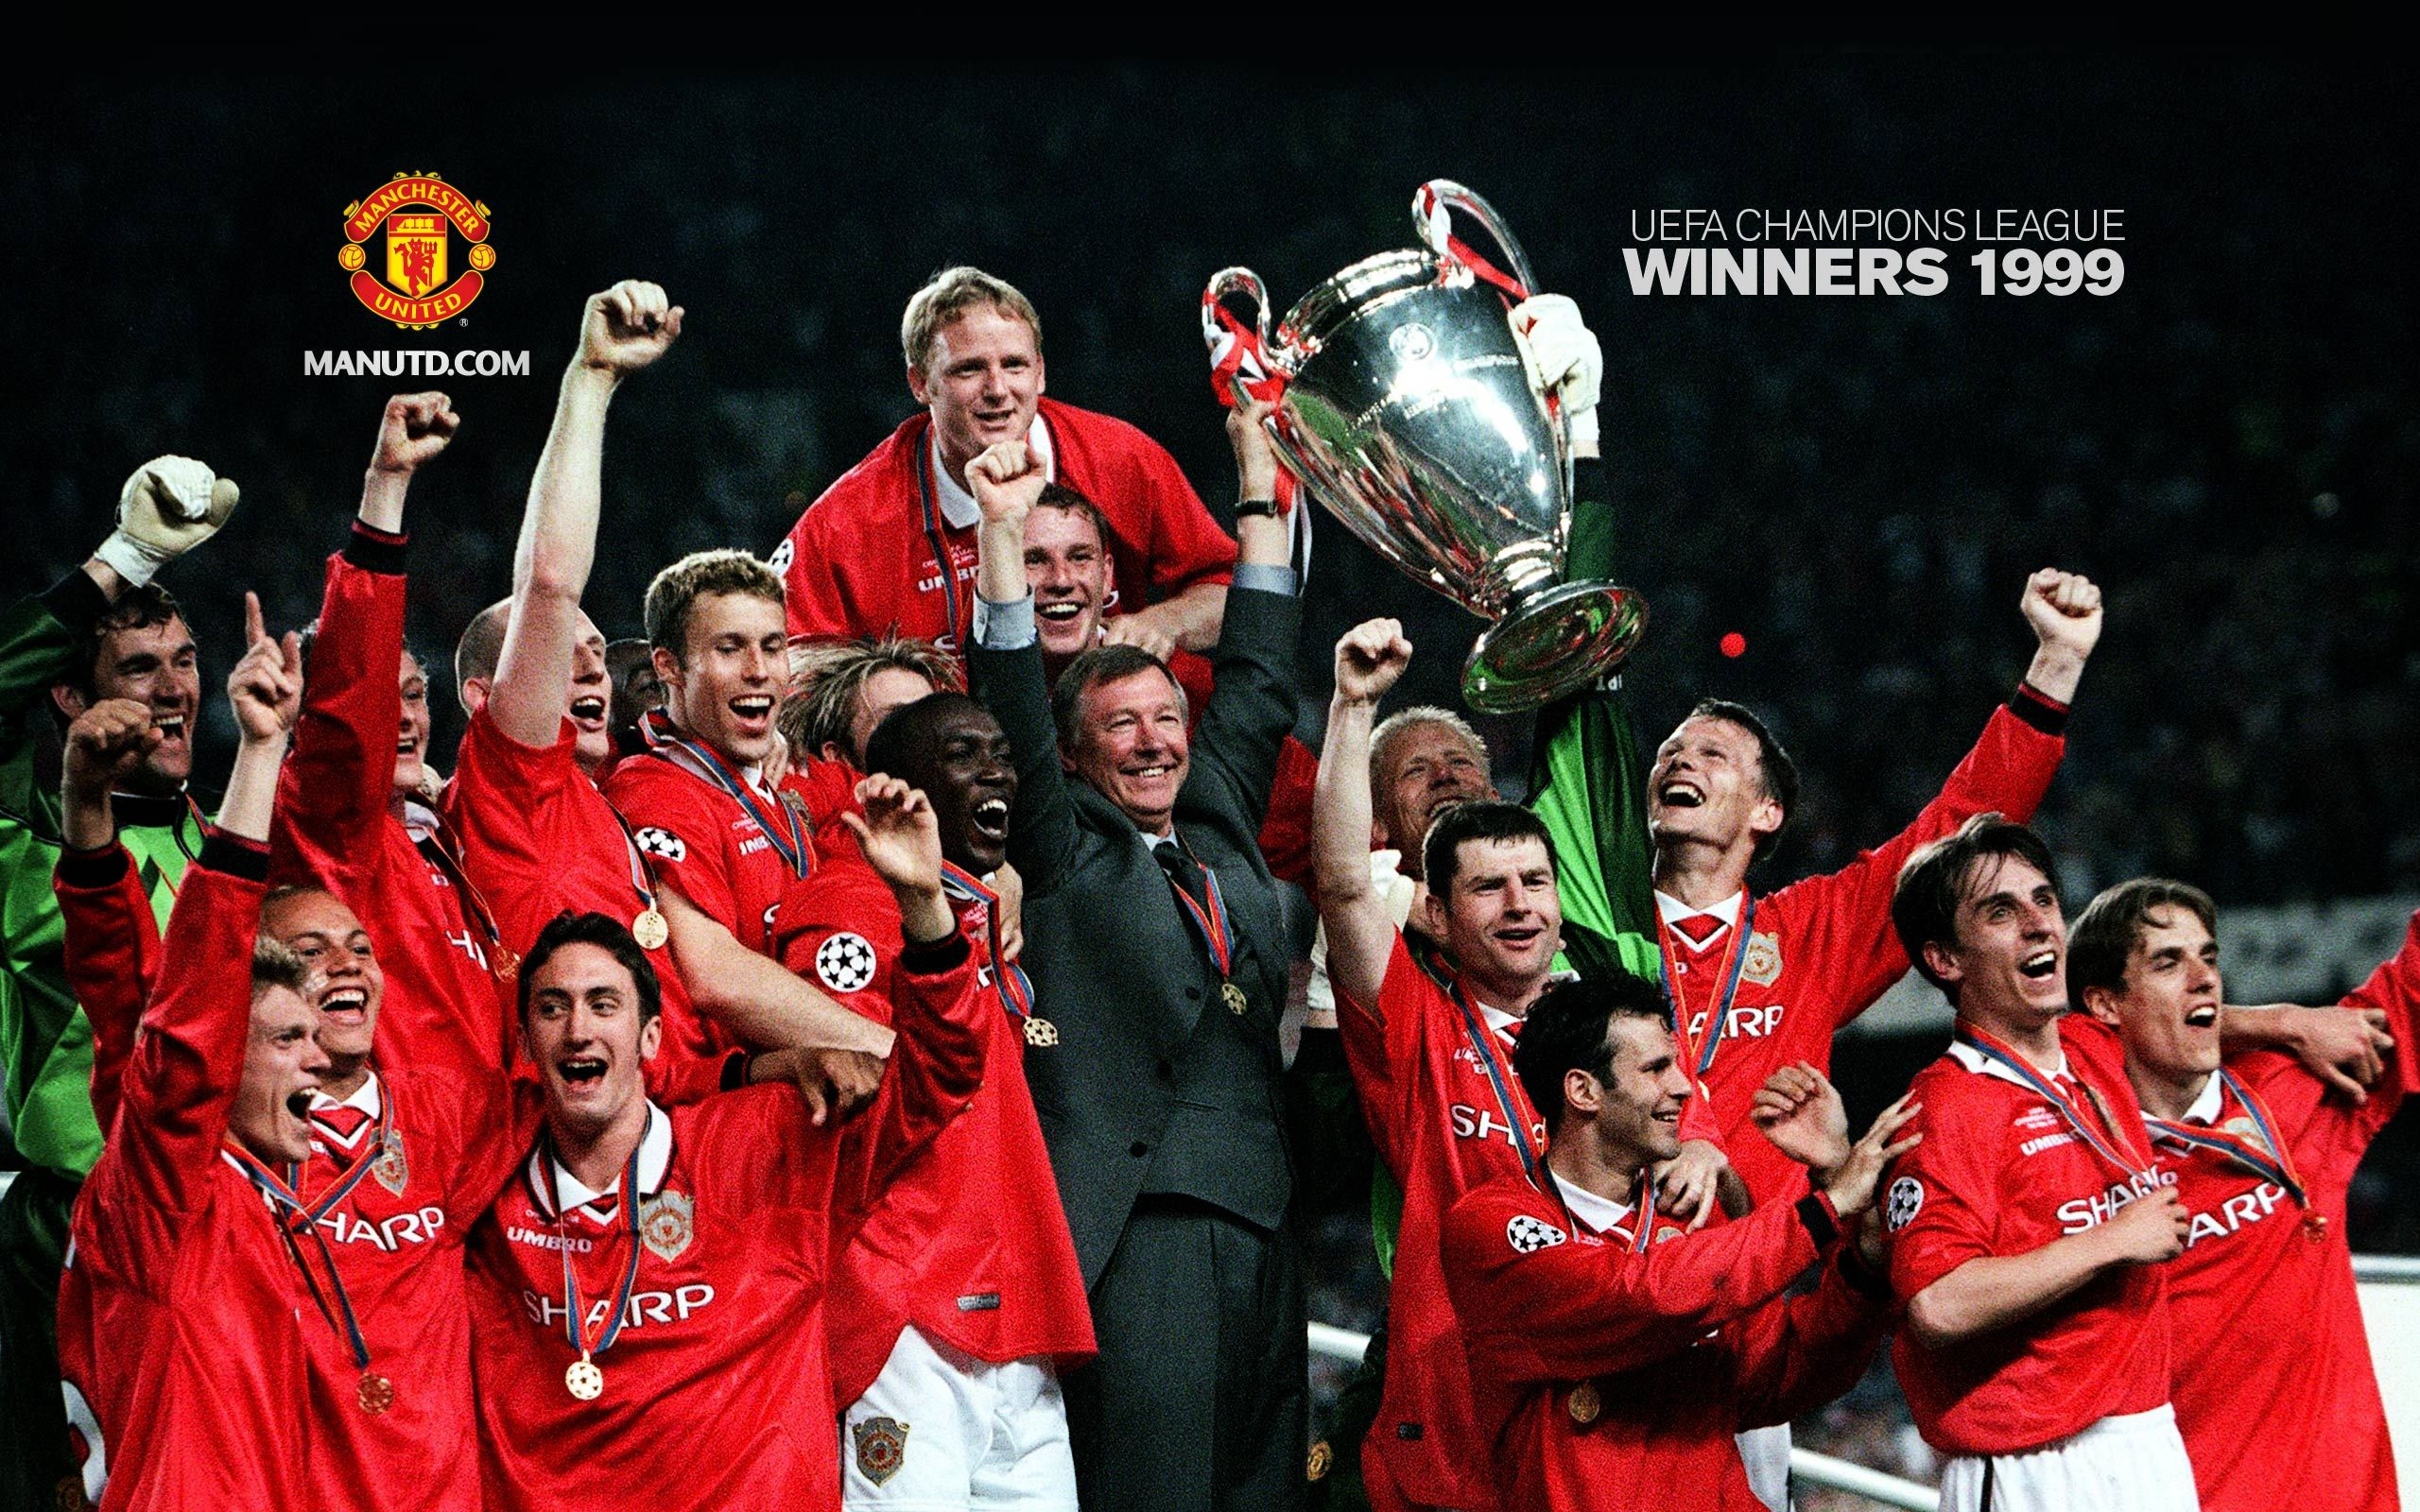 Uefa Champions League 1999 Manchester United Champions Manchester United Players Manchester United Football Club